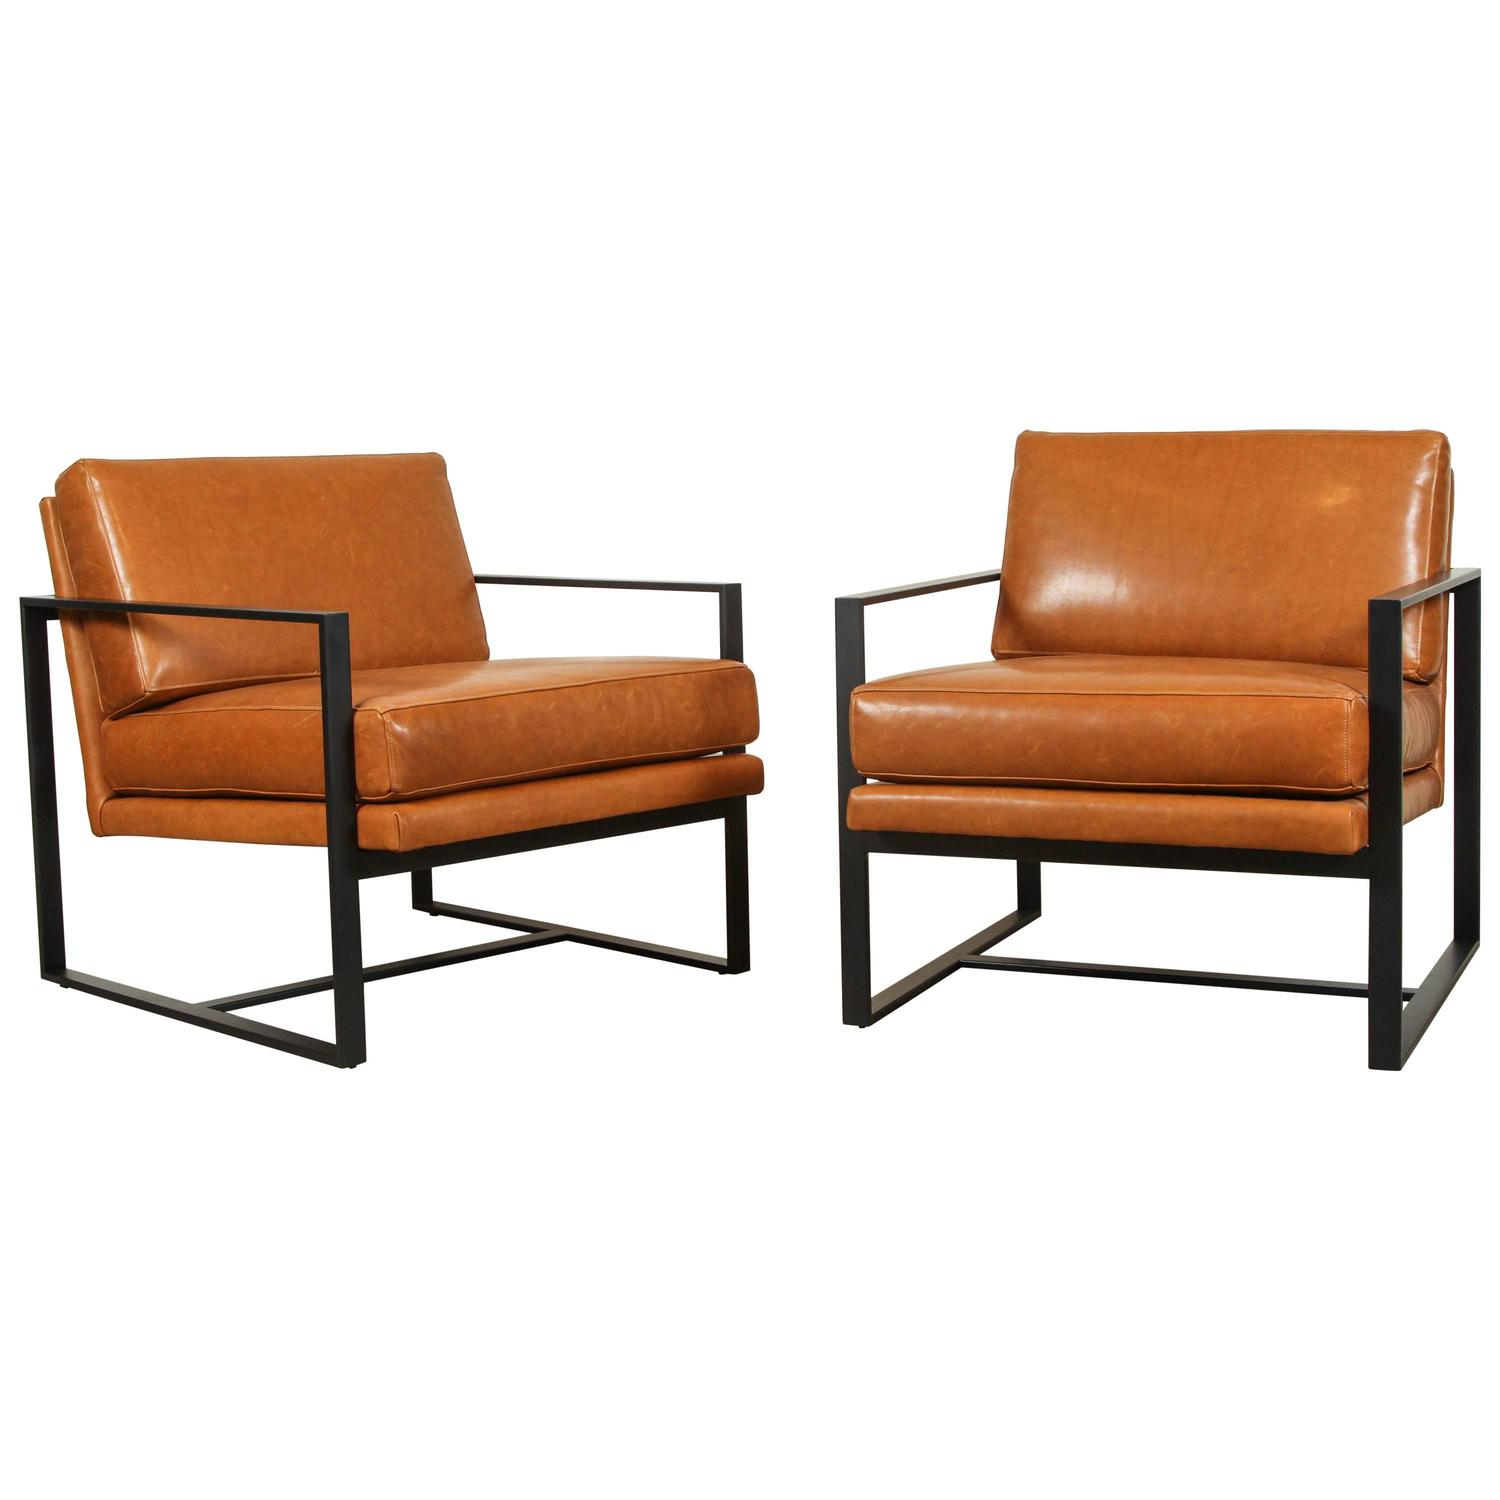 Of four chairs in oak and patinated cognac leather for sale at 1stdibs - Of Four Chairs In Oak And Patinated Cognac Leather For Sale At 1stdibs 23